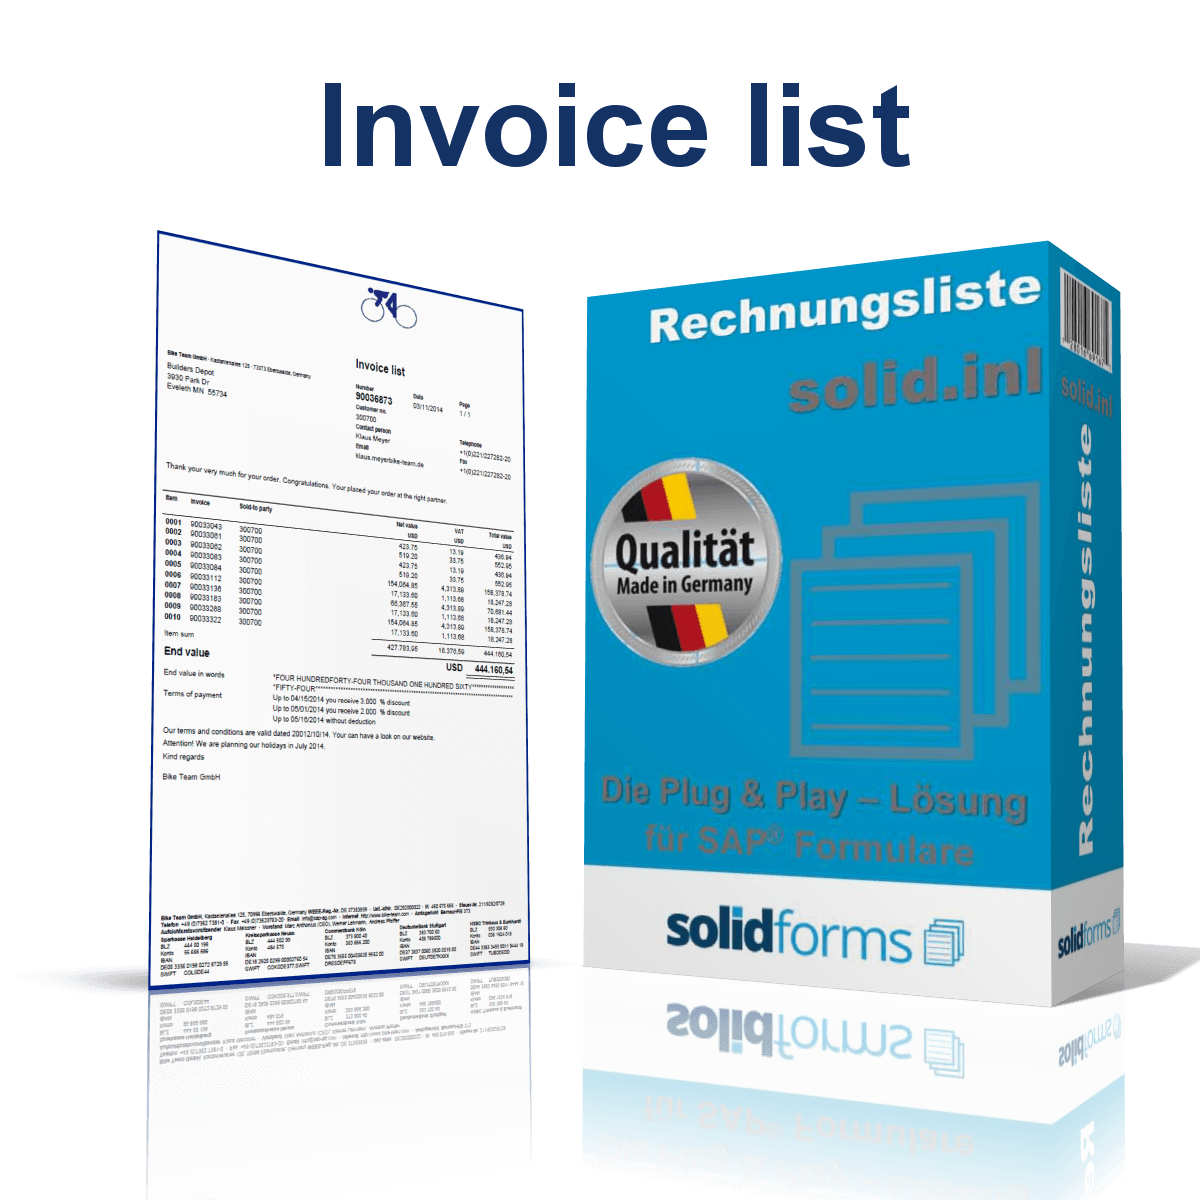 Lumper Receipt Template Excel Sap Adobe Form Invoice List  Solidforms Microsoft Excel Invoice Template Pdf with Letter Of Receipt Of Payment Excel Sap Form Invoice List How To Email Multiple Invoices In Quickbooks Excel